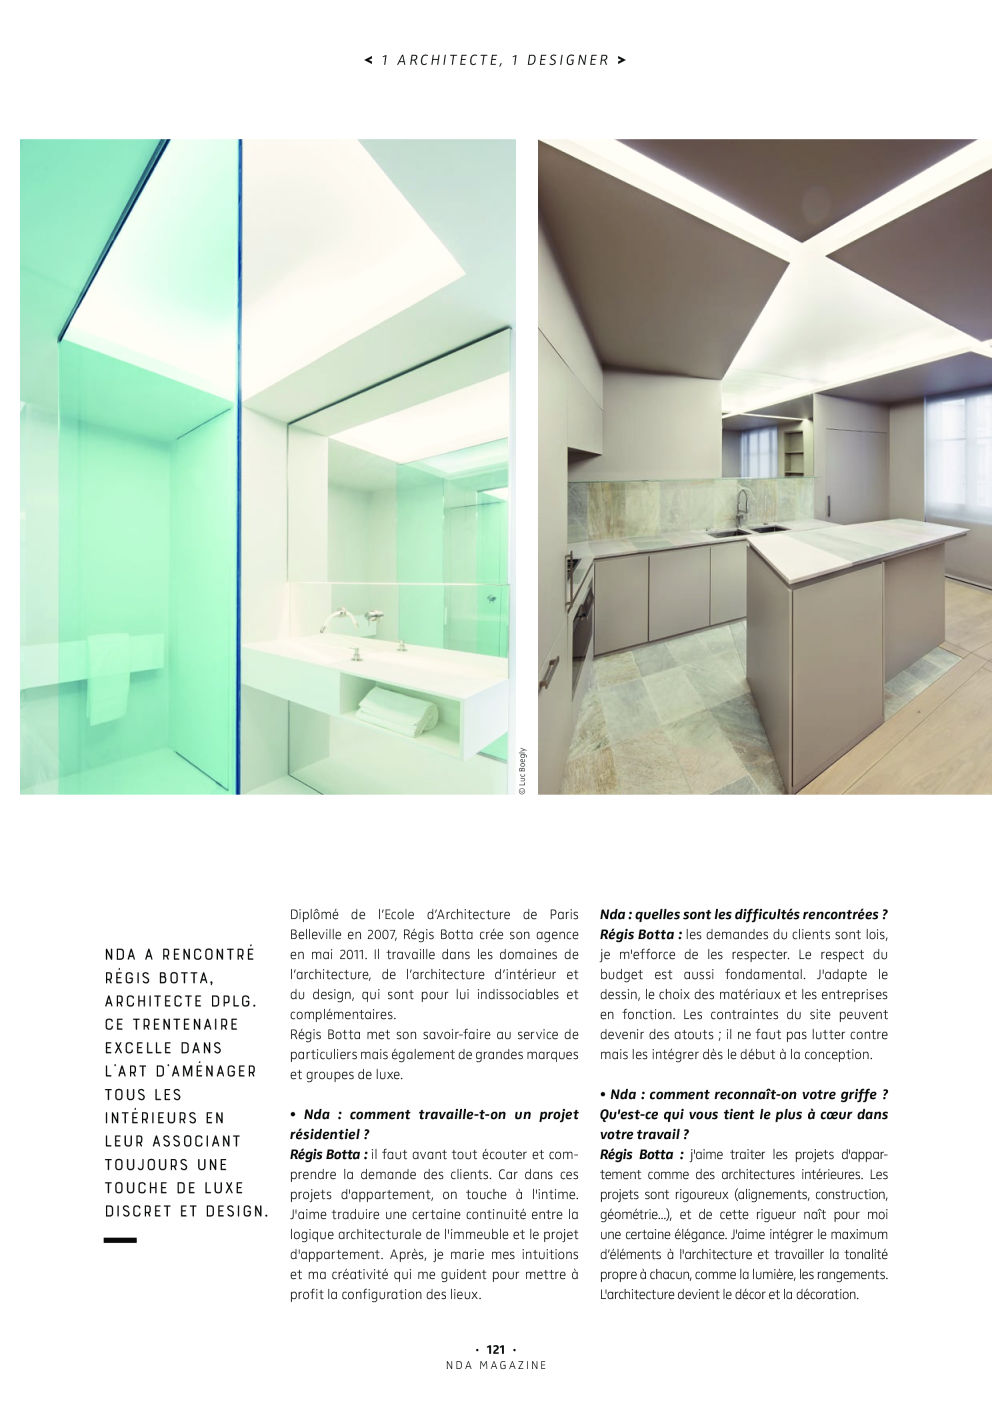 Devenir Architecte D'interieur à 40 Ans P17 Jpg